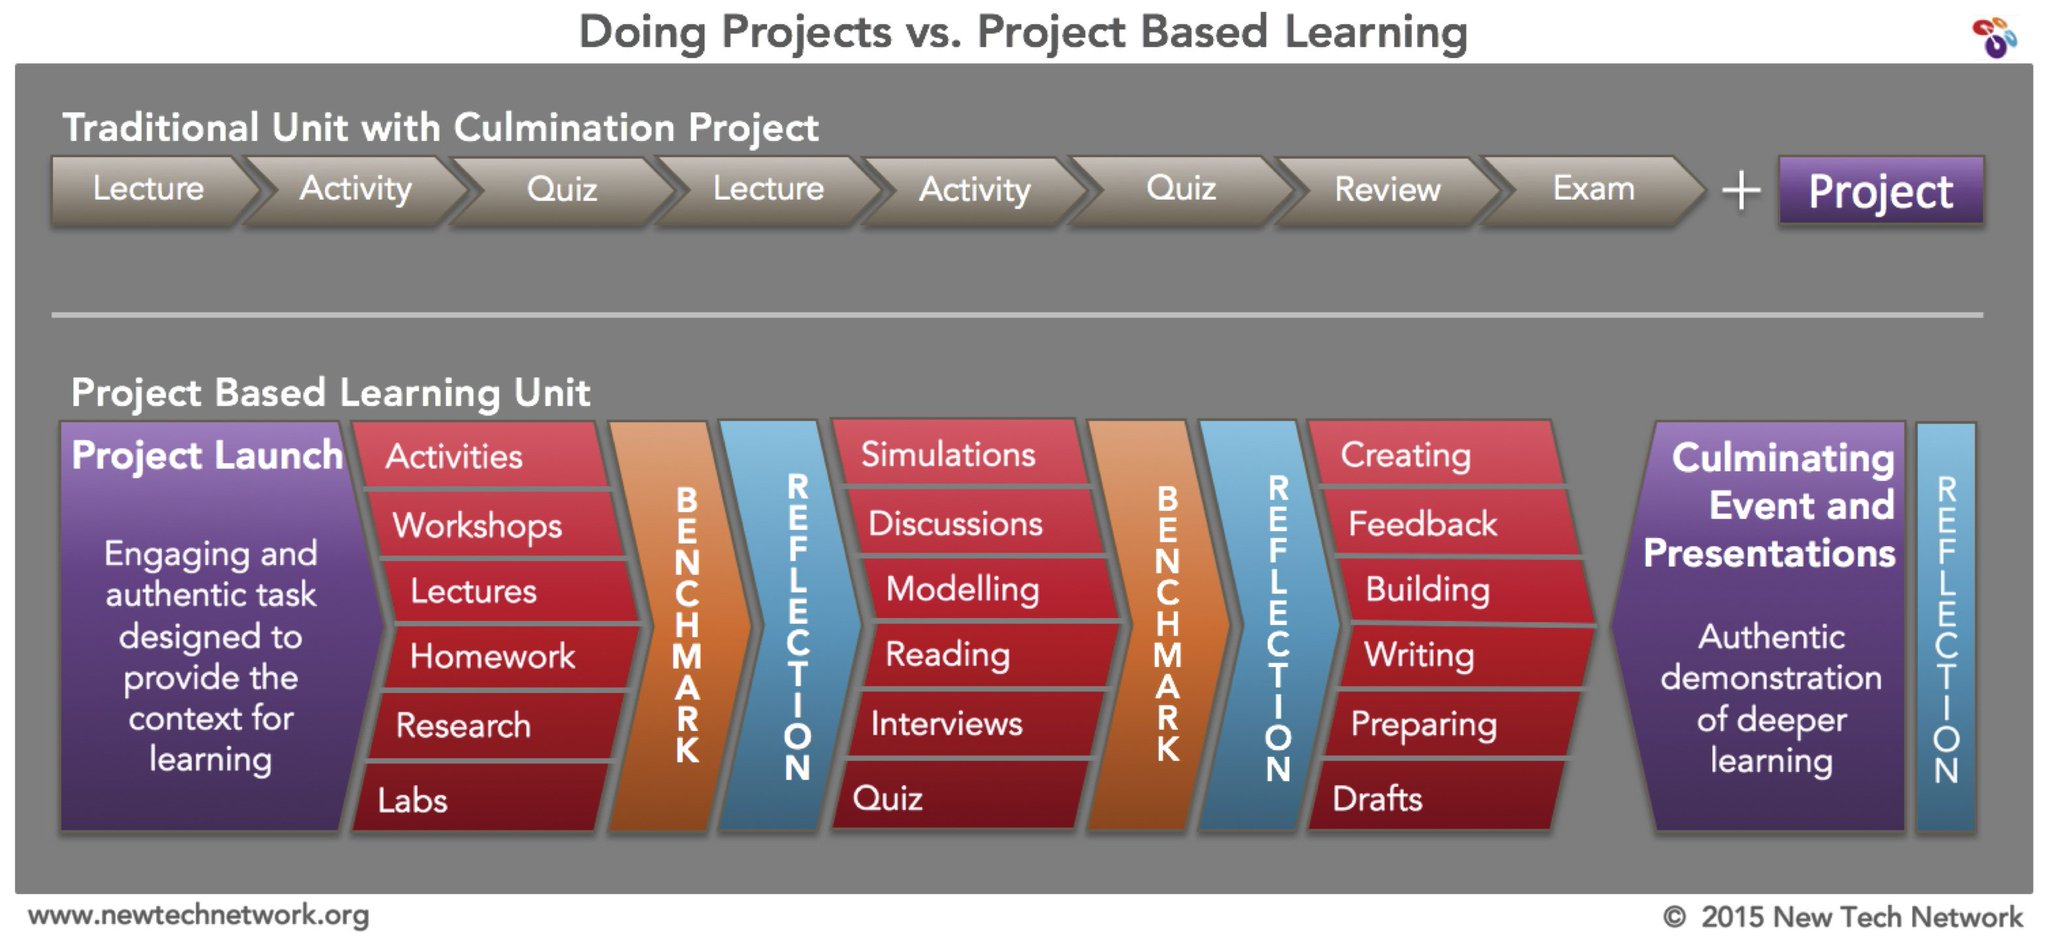 New to #PBL? Here is a graphic that breaks down the difference between projects & PBL #PBLChat https://t.co/IqZSj6n3Lp